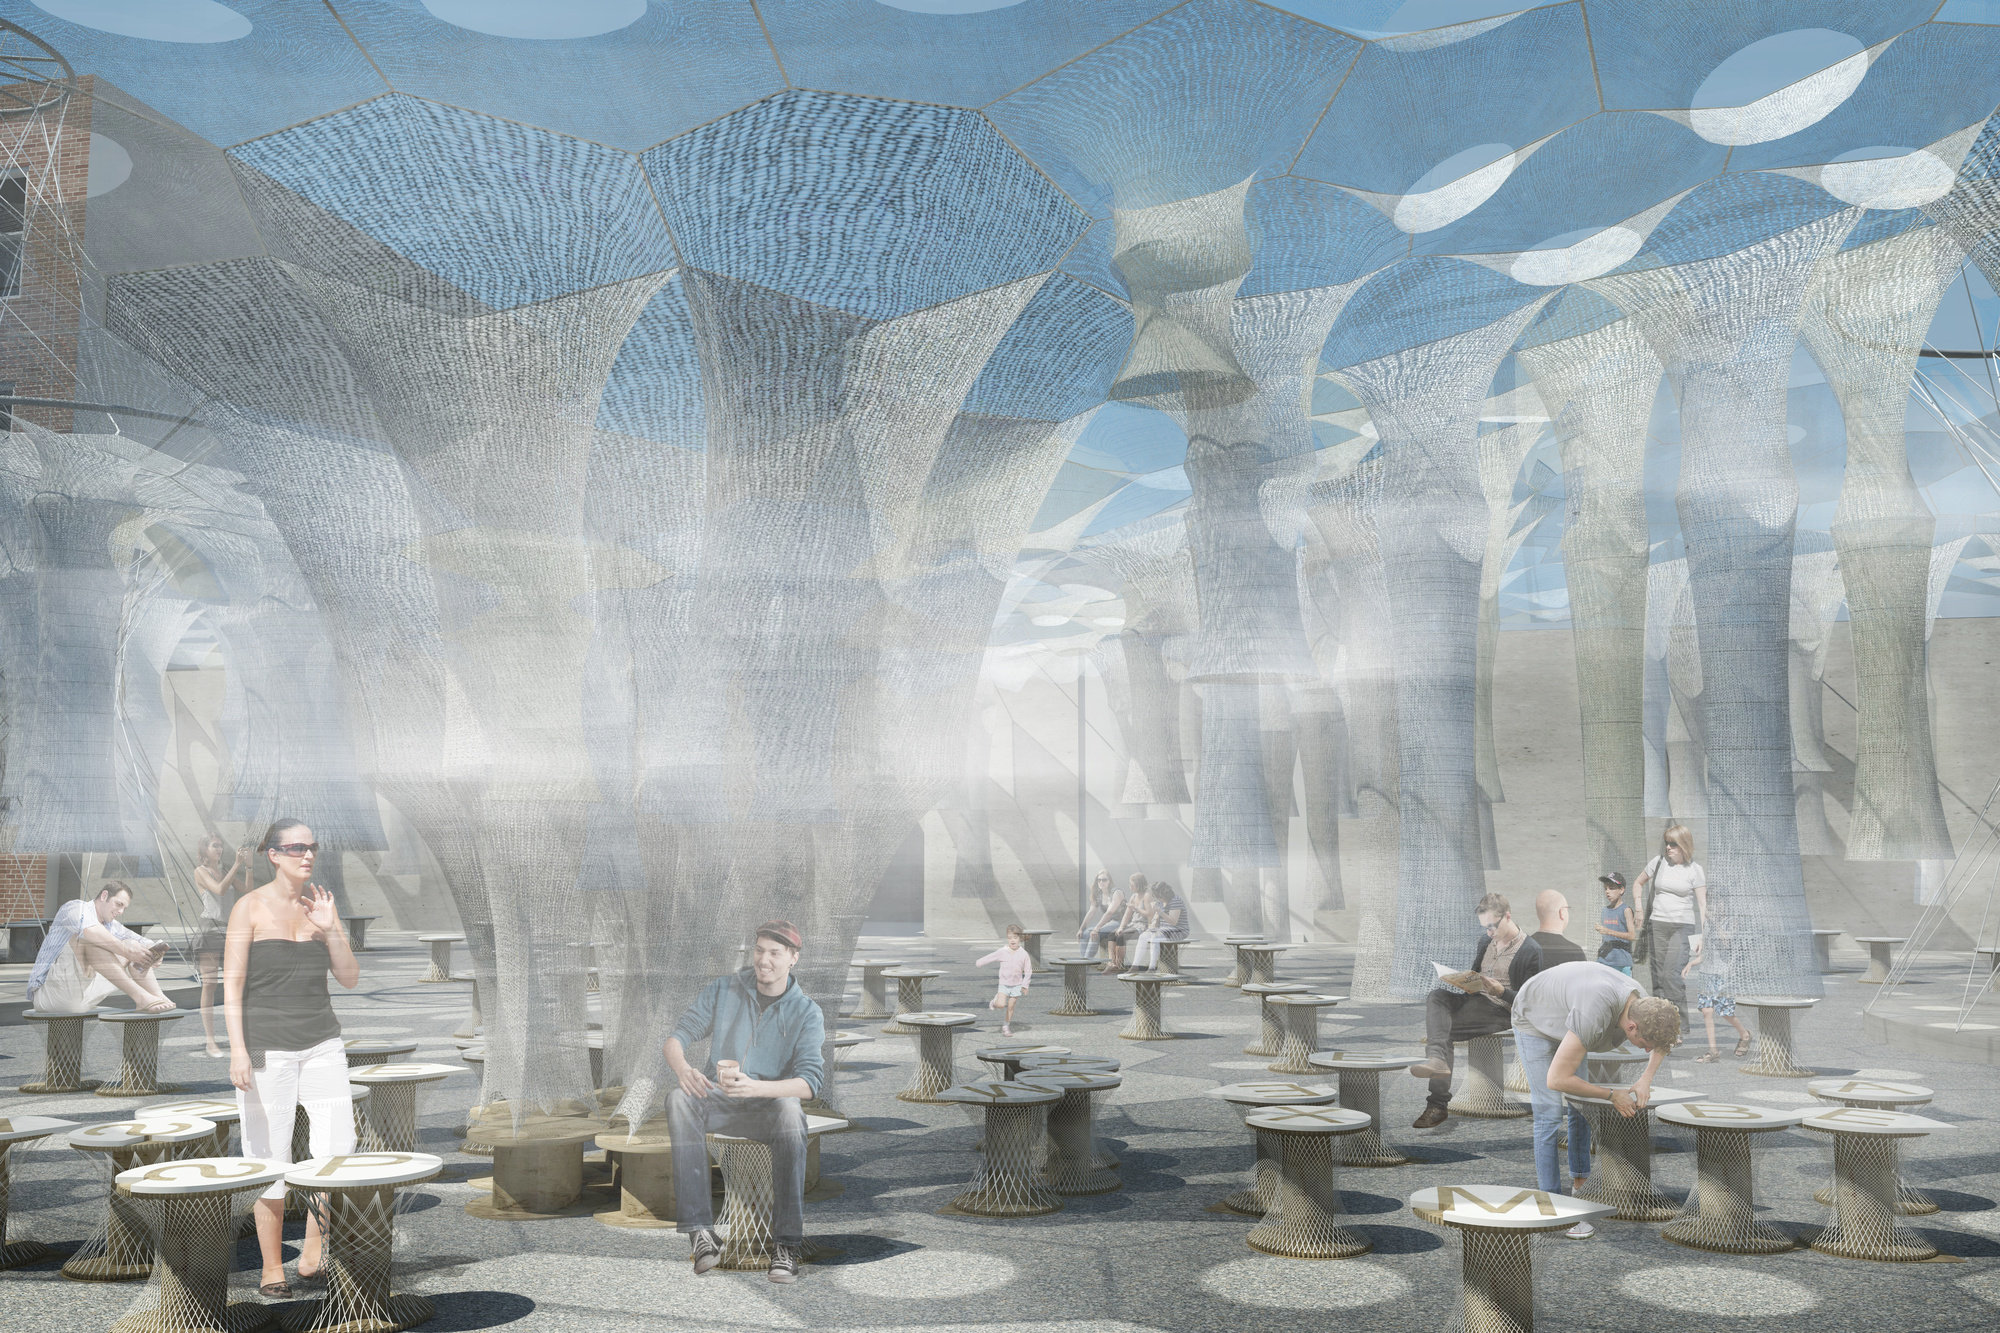 MoMA PS1u0027s courtyard will be transformed by a robotically-woven luminescent canopy & MoMA PS1u0027s courtyard will be transformed by a robotically-woven ...